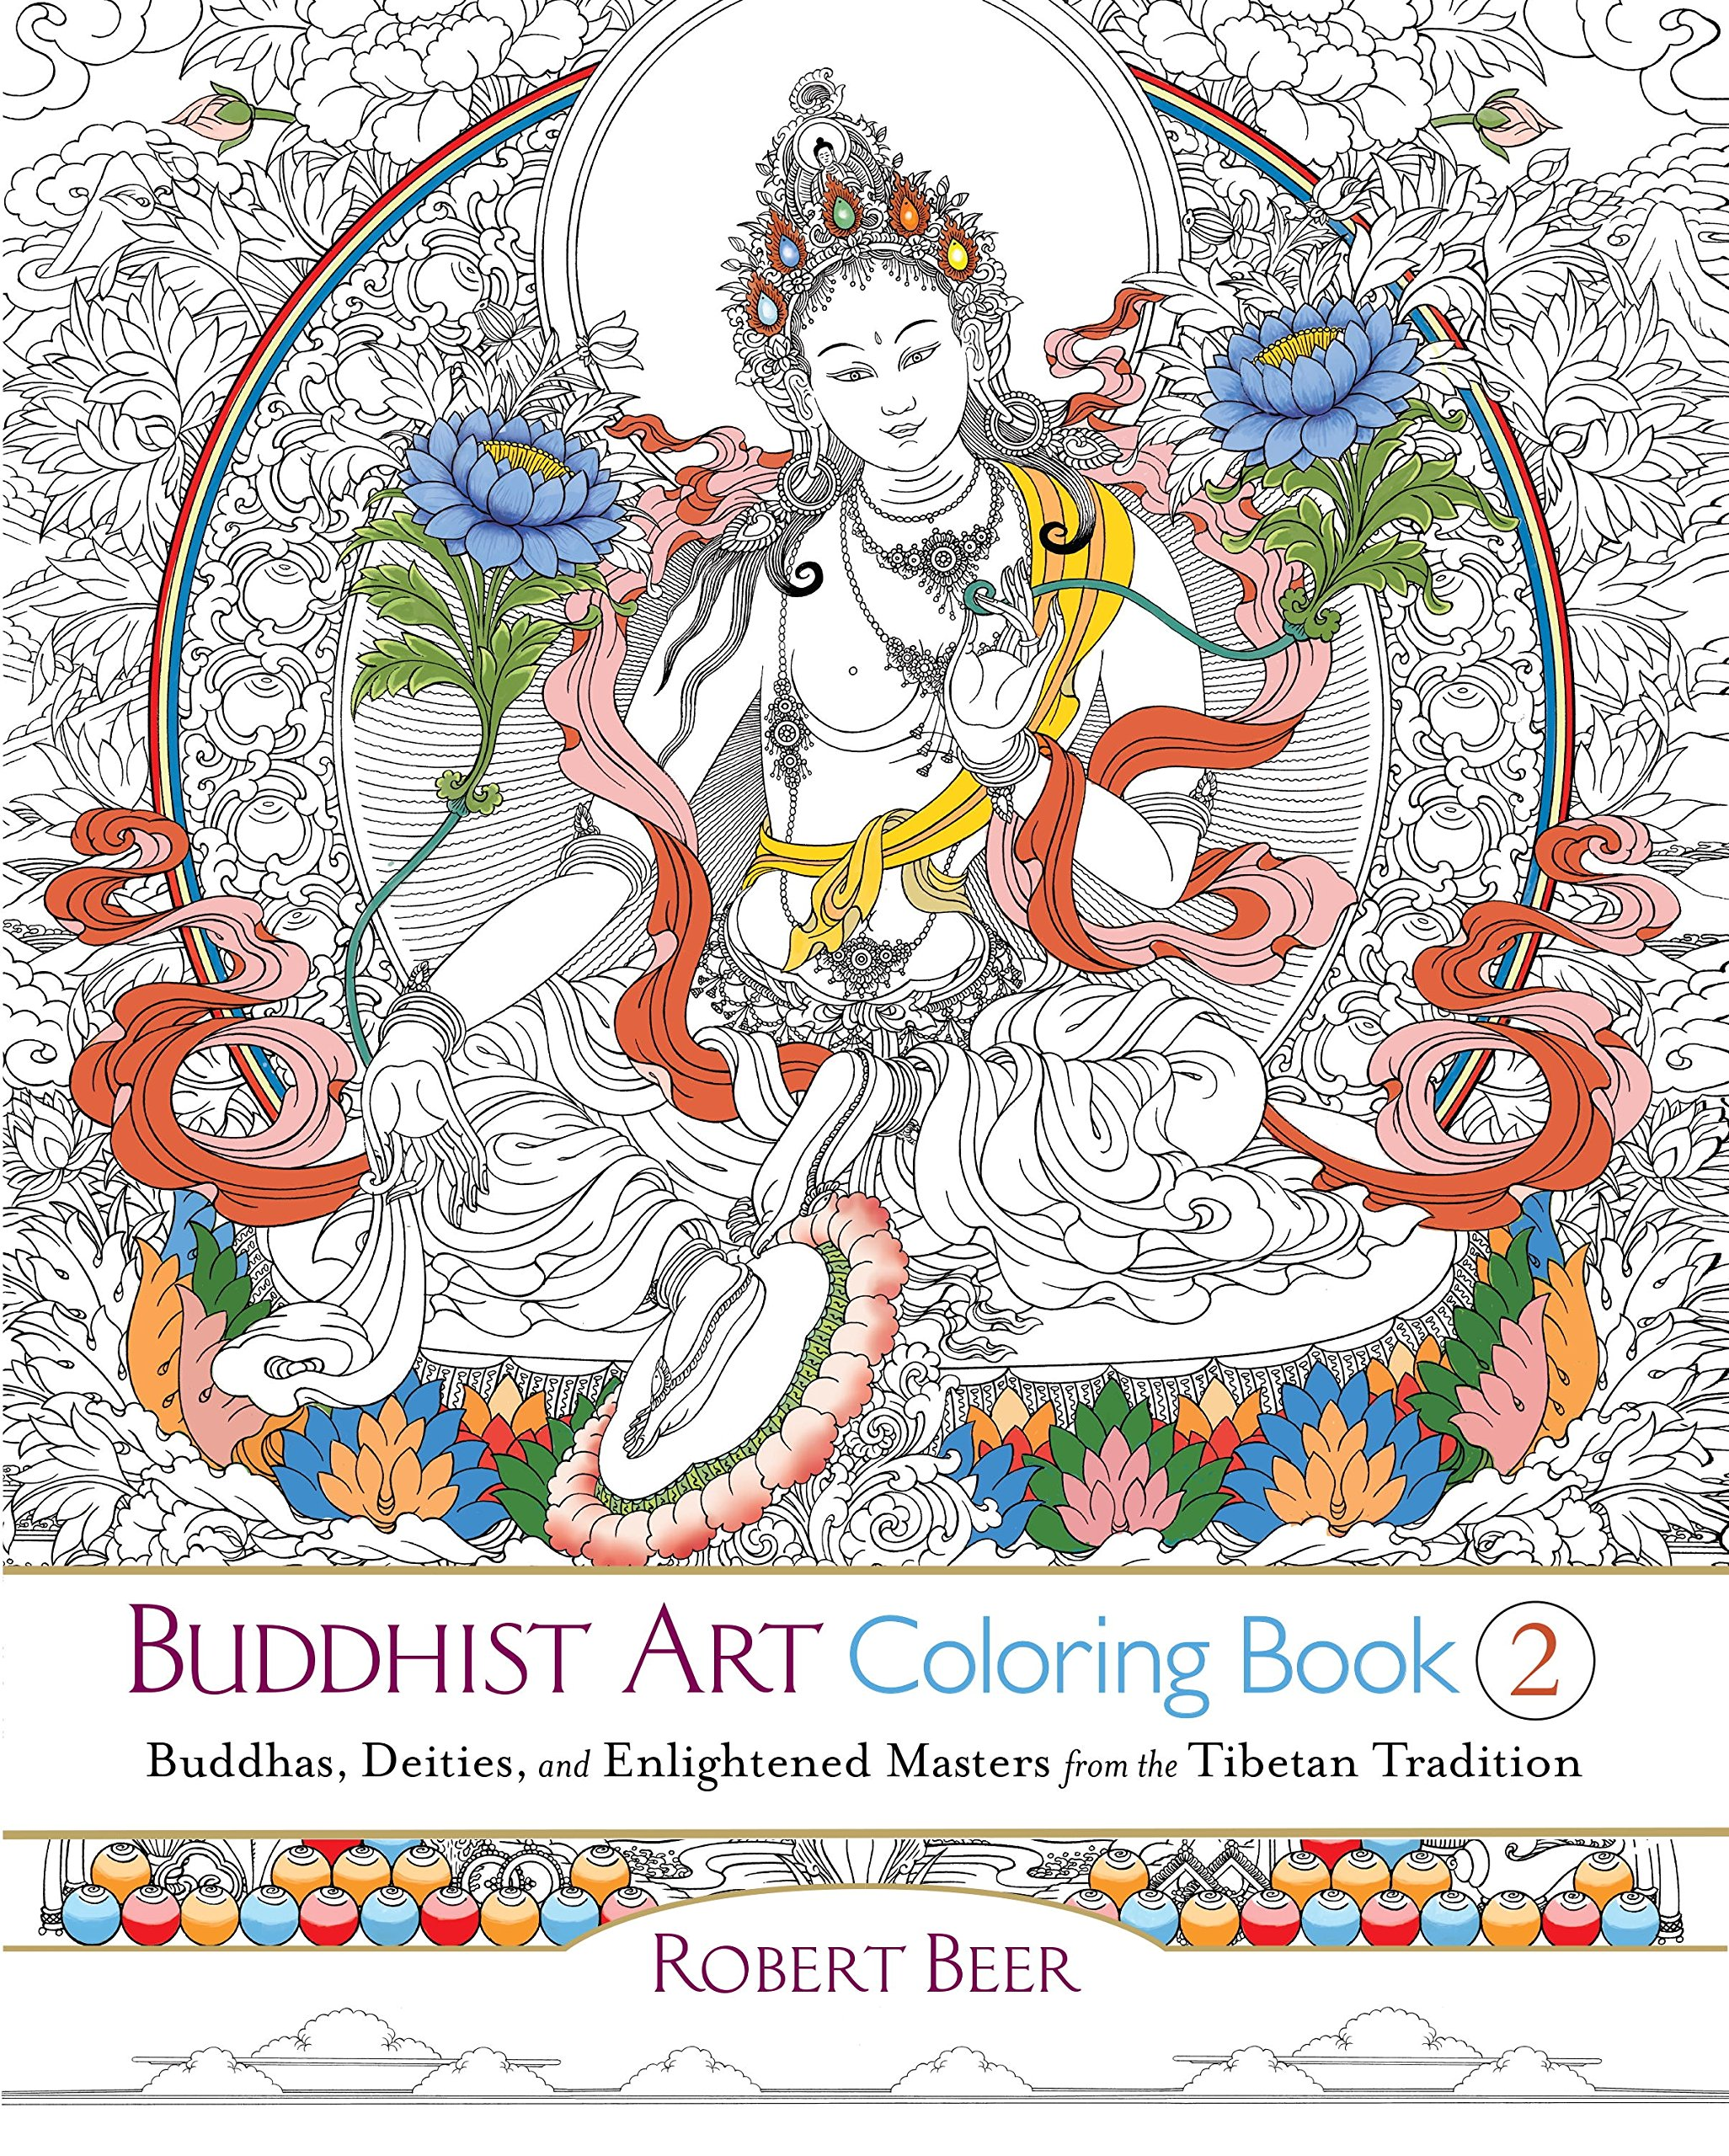 Handbook of tibetan buddhist symbols amazon robert beer buddhist art coloring book 2 buddhas deities and enlightened masters from the tibetan buycottarizona